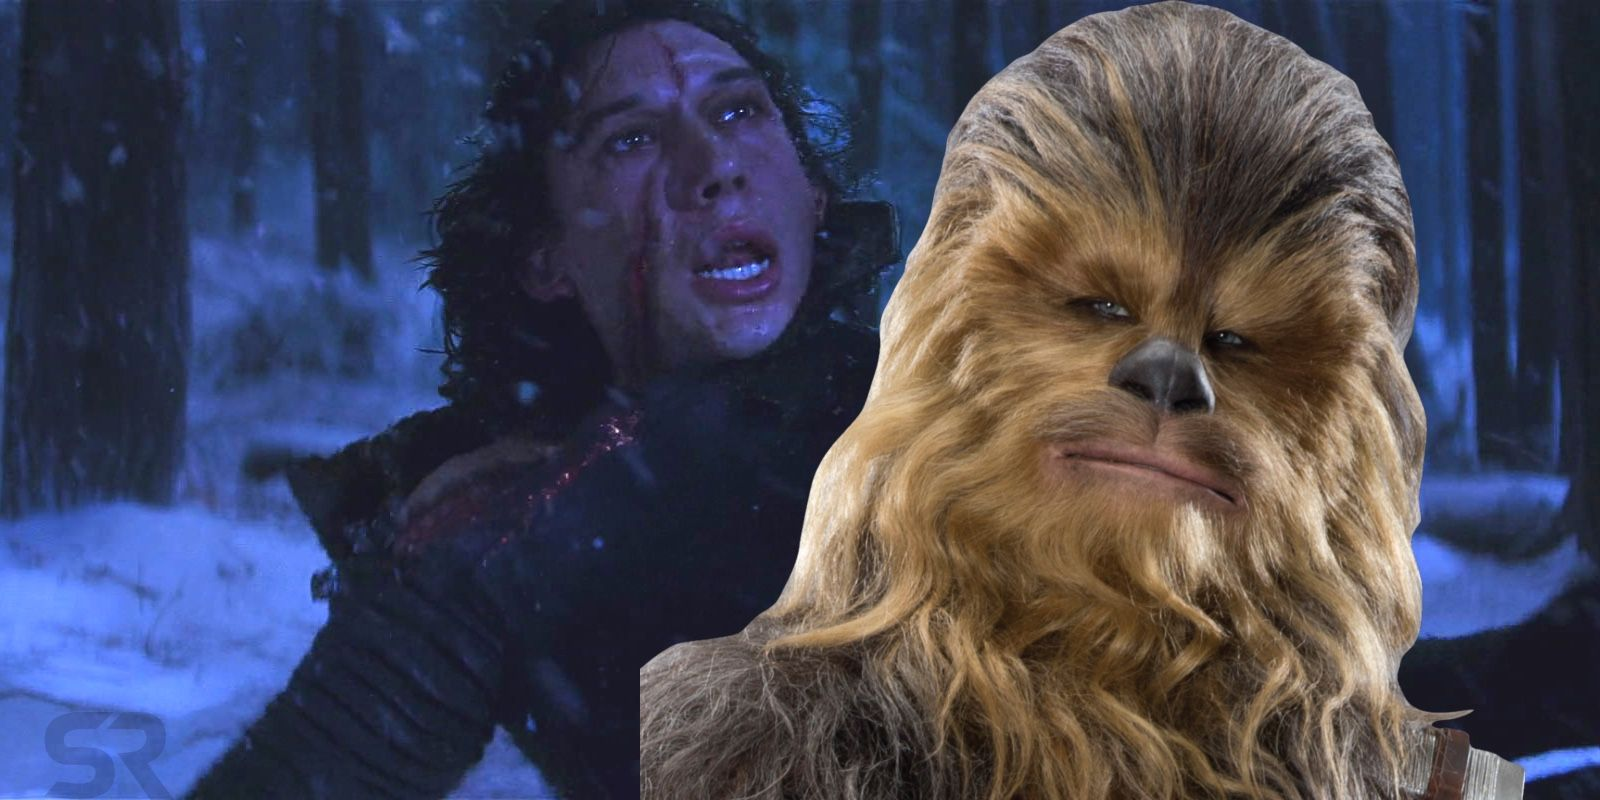 [Image: Force-Awakens-Kylo-Ren-Chewbacca.jpg]